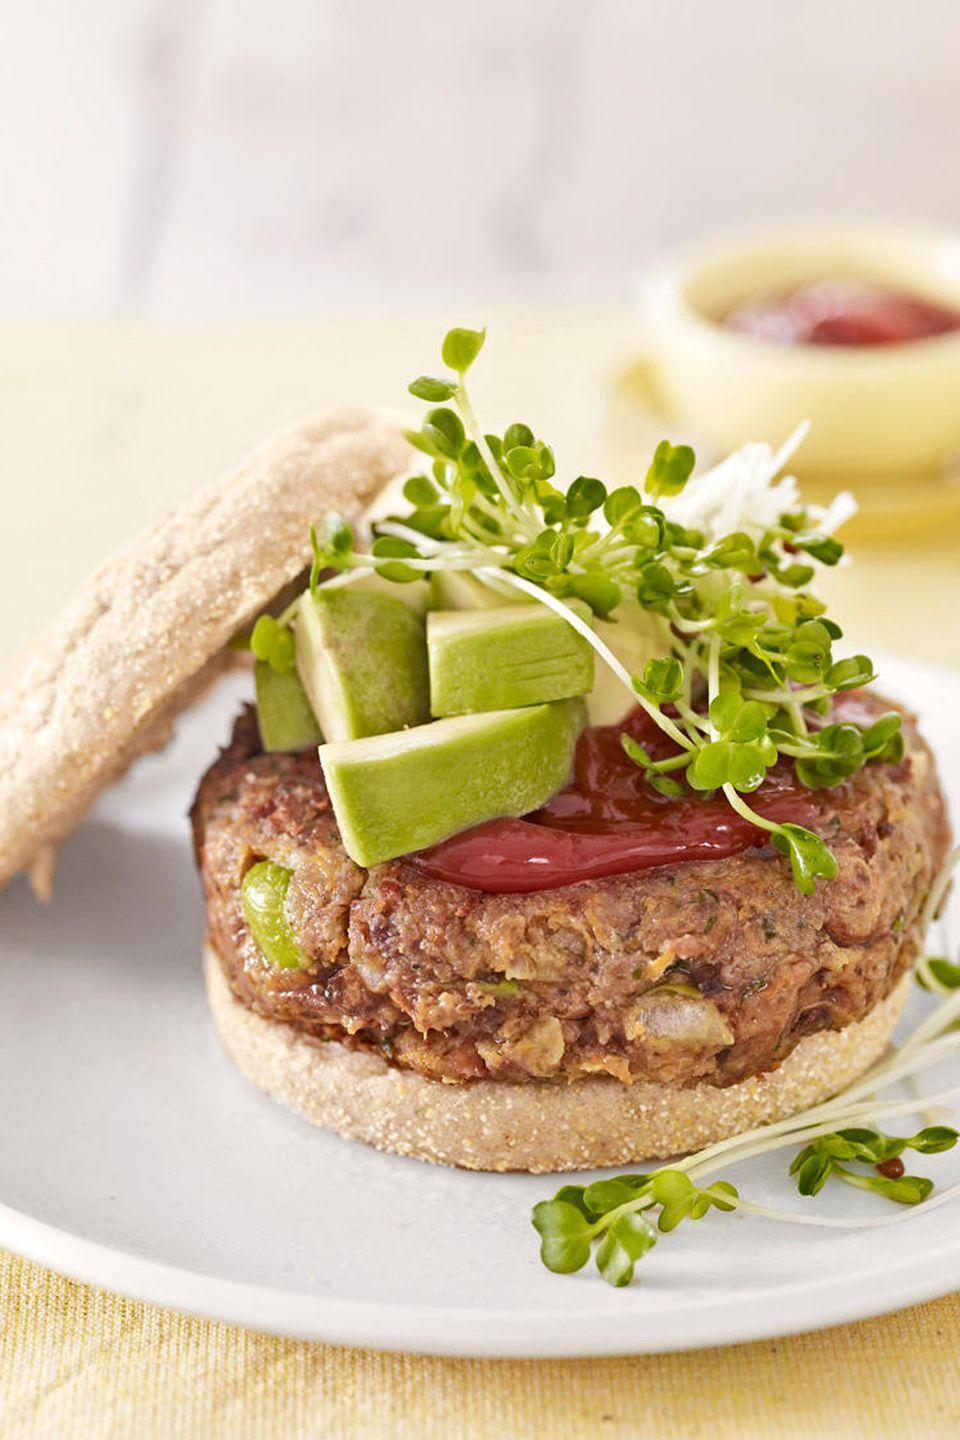 "<p>Use canned pinto beans to make this easy and quick recipe. </p><p><strong><a href=""https://www.countryliving.com/food-drinks/recipes/a2947/veggie-burgers-recipe-09/"" rel=""nofollow noopener"" target=""_blank"" data-ylk=""slk:Get the recipe"" class=""link rapid-noclick-resp"">Get the recipe</a>.</strong></p><p><a class=""link rapid-noclick-resp"" href=""https://www.amazon.com/Victoria-Skillet-Seasoned-Flaxseed-Certified/dp/B01726HD72/?tag=syn-yahoo-20&ascsubtag=%5Bartid%7C10063.g.35089489%5Bsrc%7Cyahoo-us"" rel=""nofollow noopener"" target=""_blank"" data-ylk=""slk:SHOP SKILLETS"">SHOP SKILLETS</a></p>"